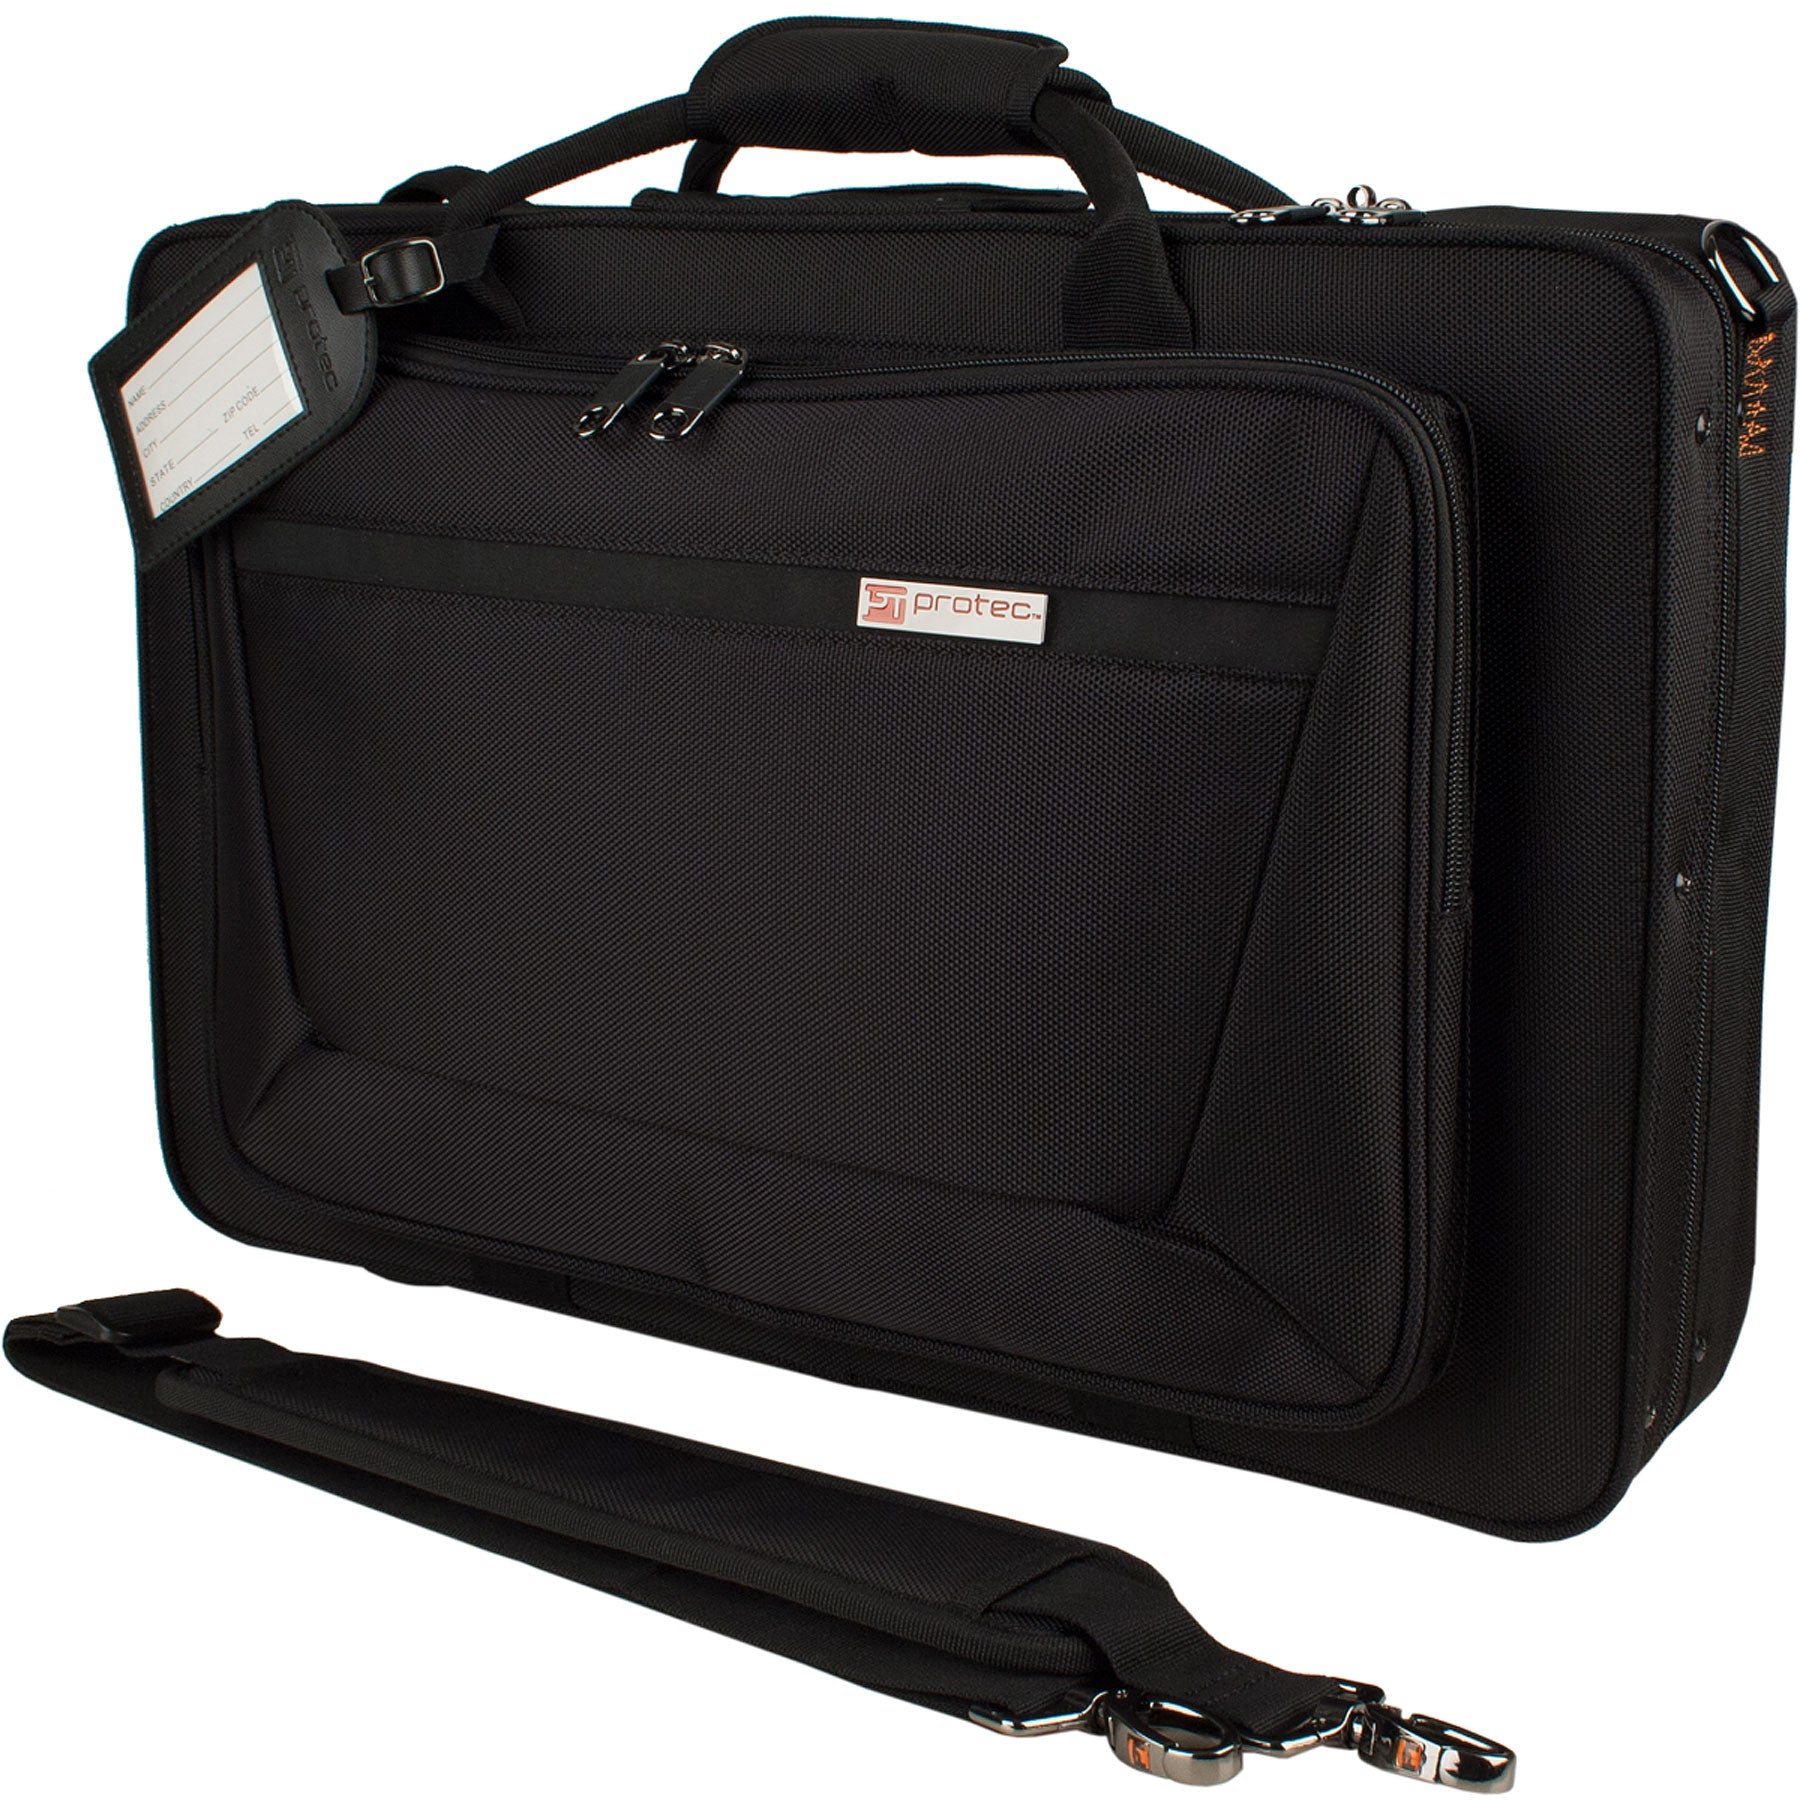 PROTEC Oboe & English Horn Combo Pro Pac